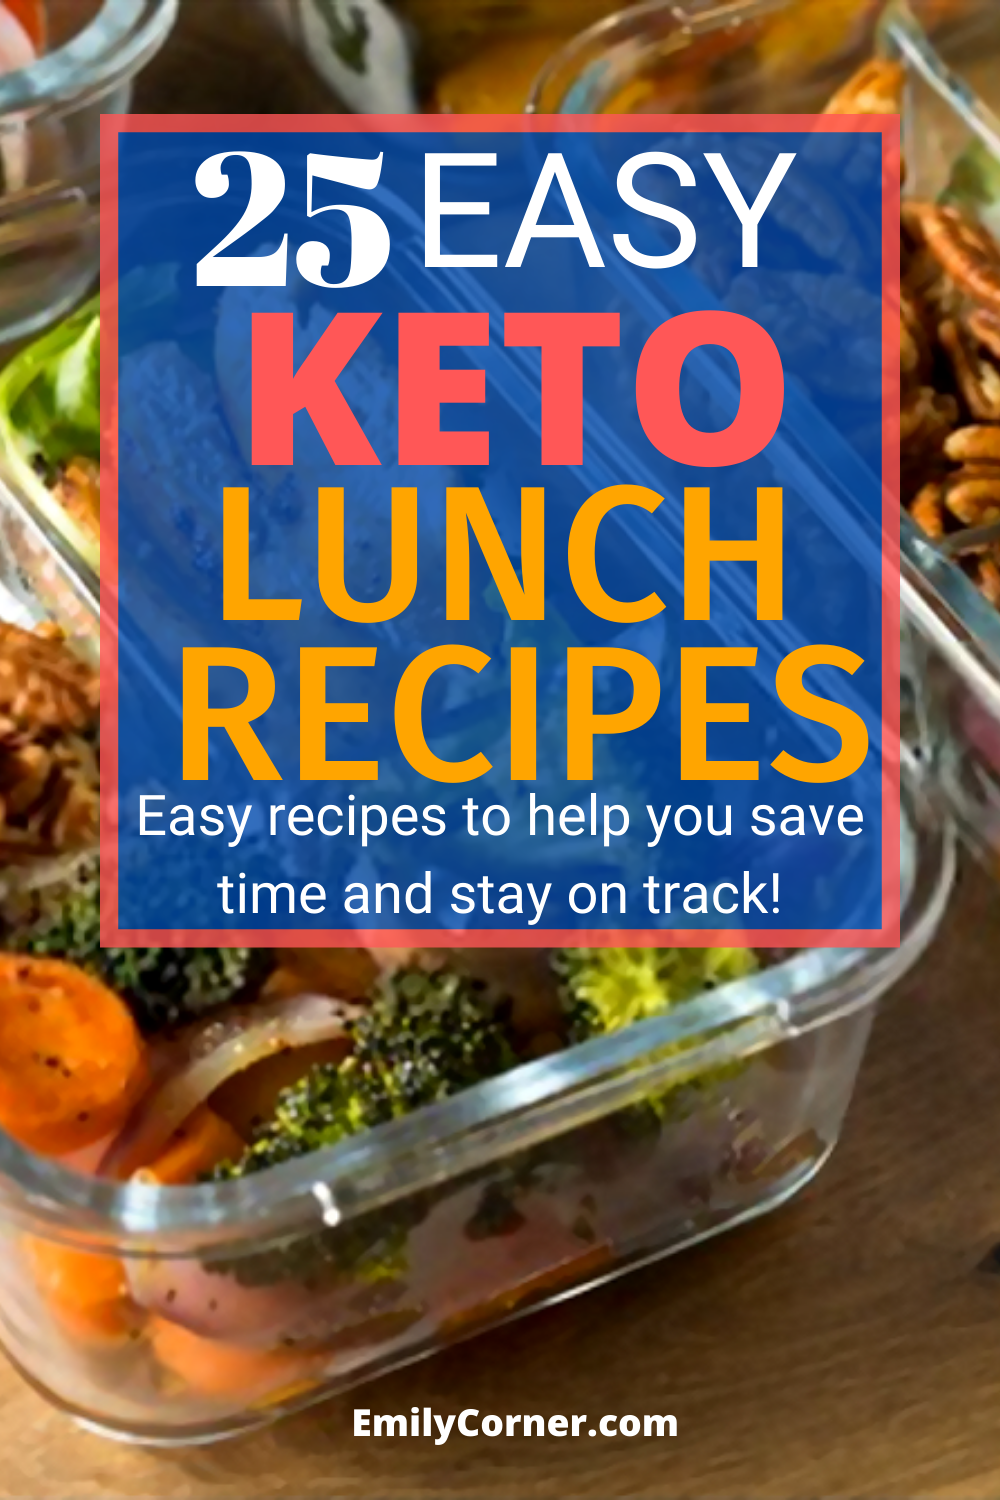 keto lunch recipes